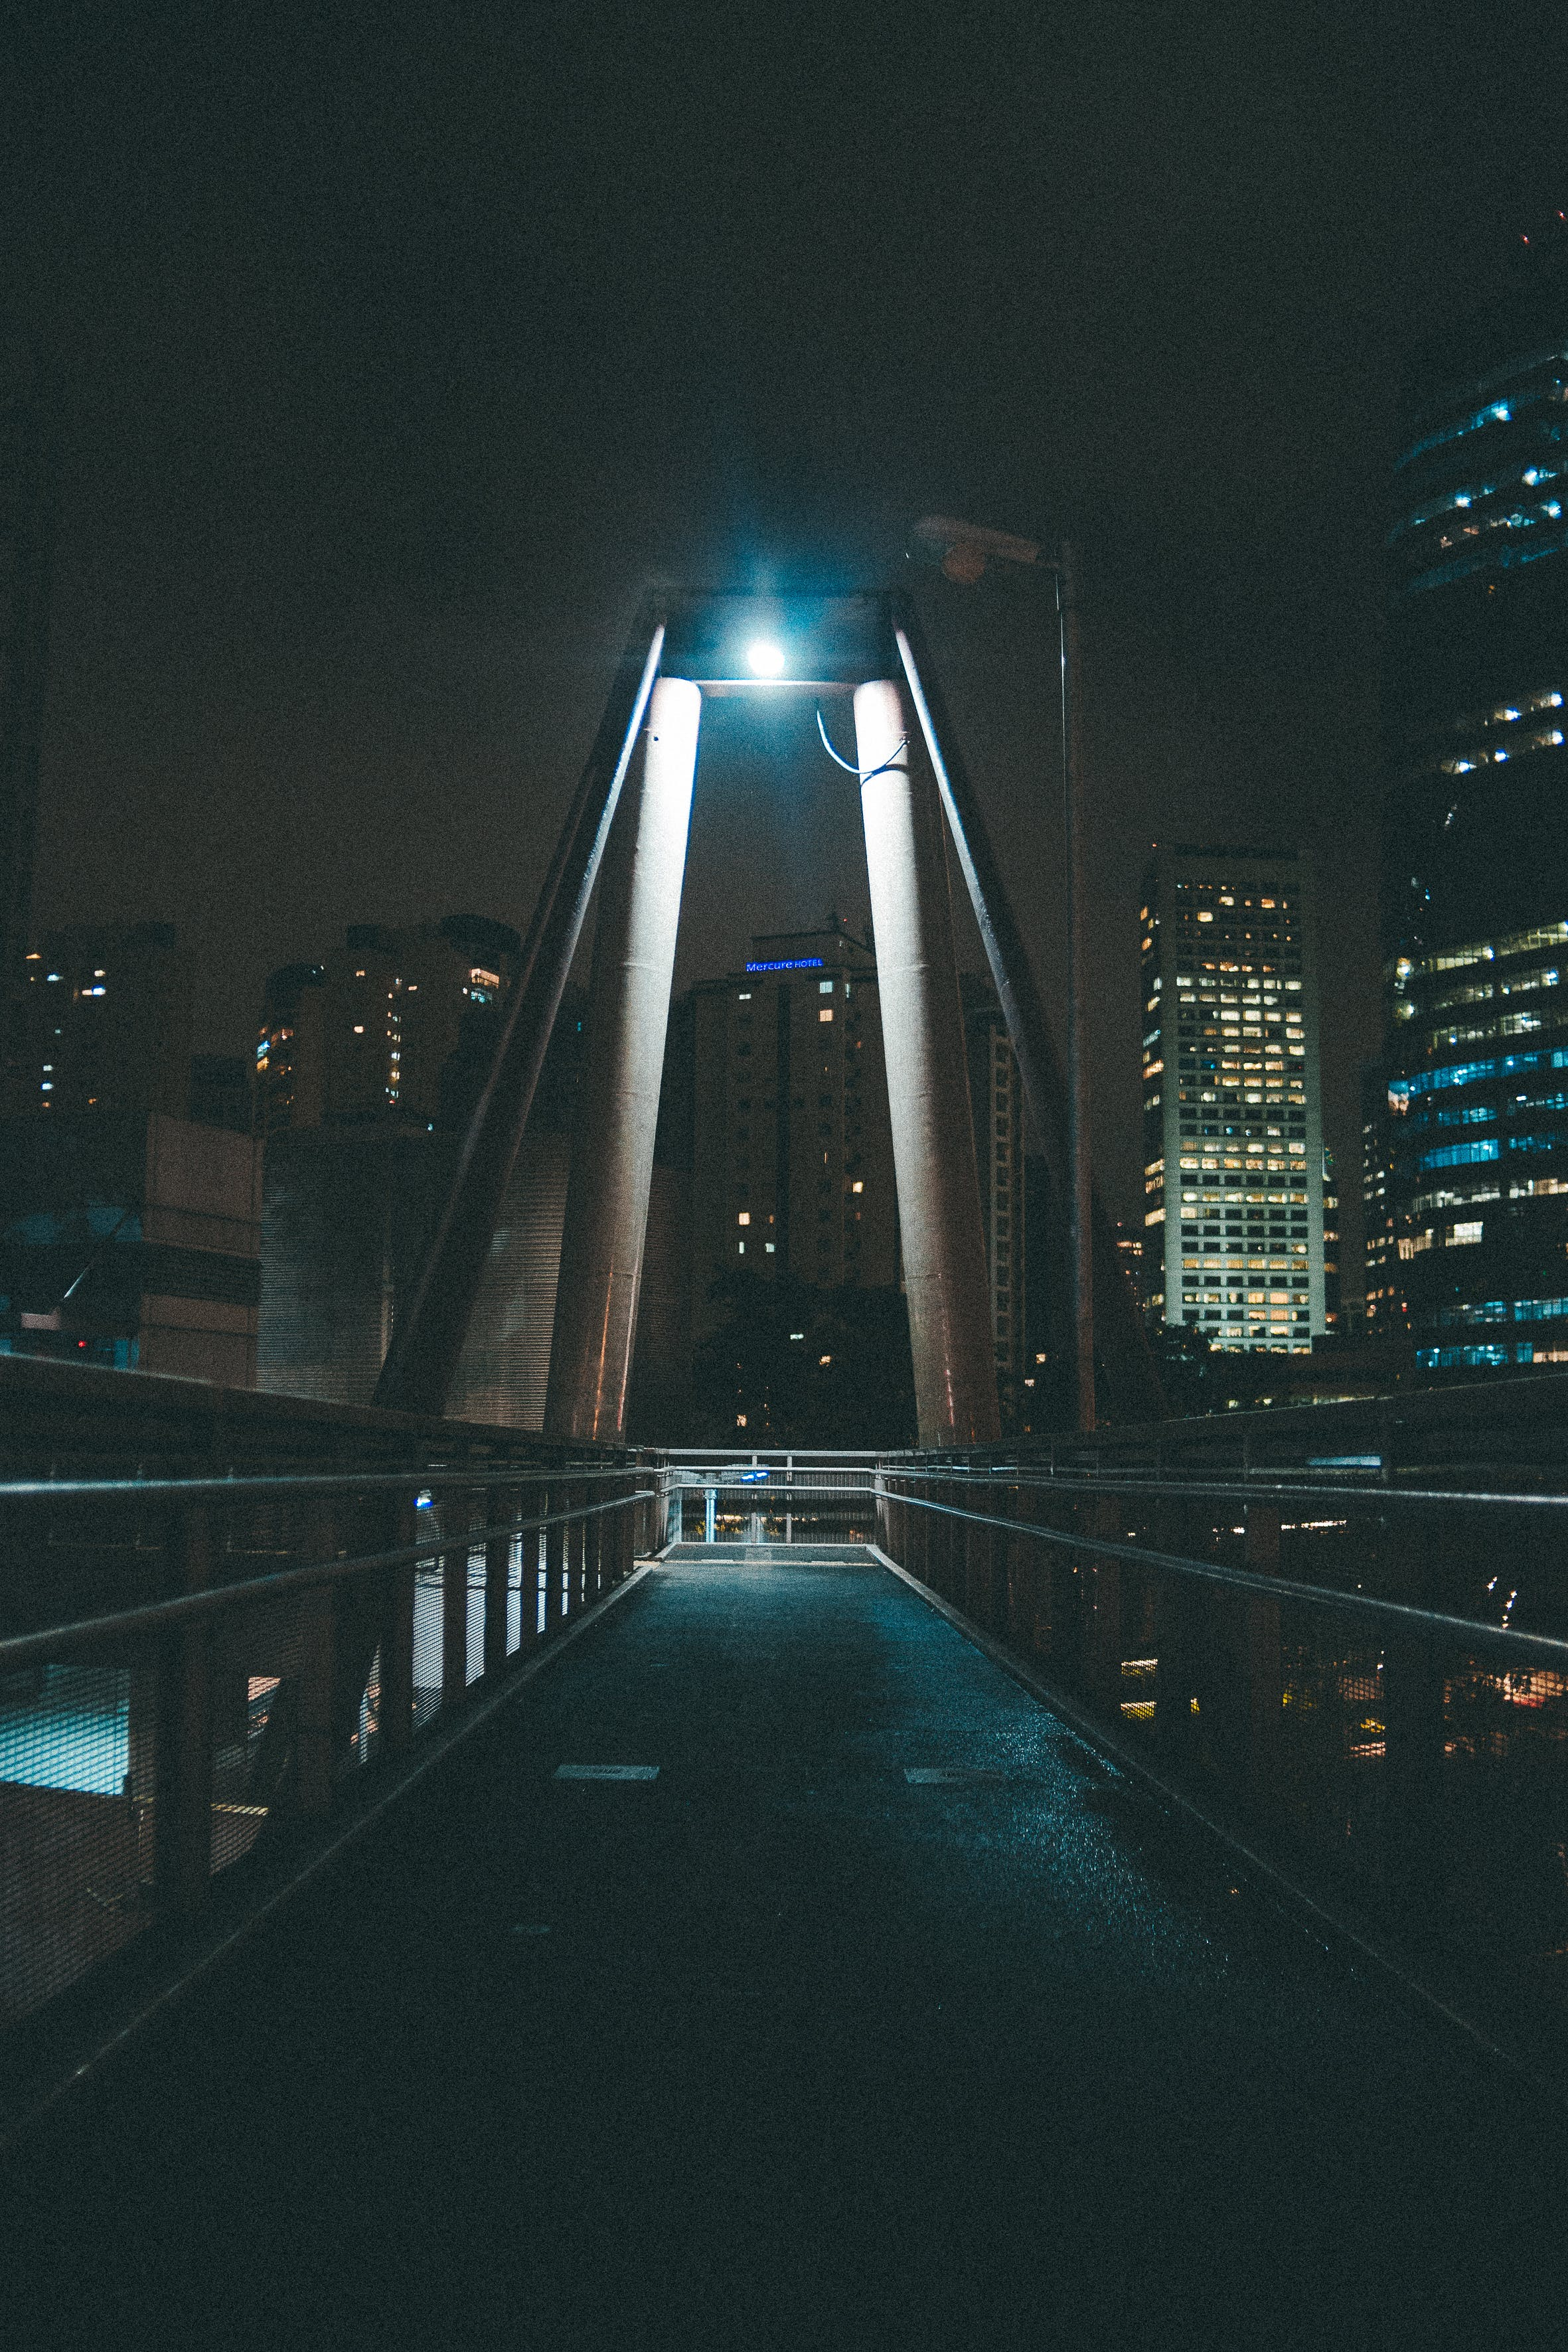 Gray Bridge Near City Buildings With Lights Turned Near at Night